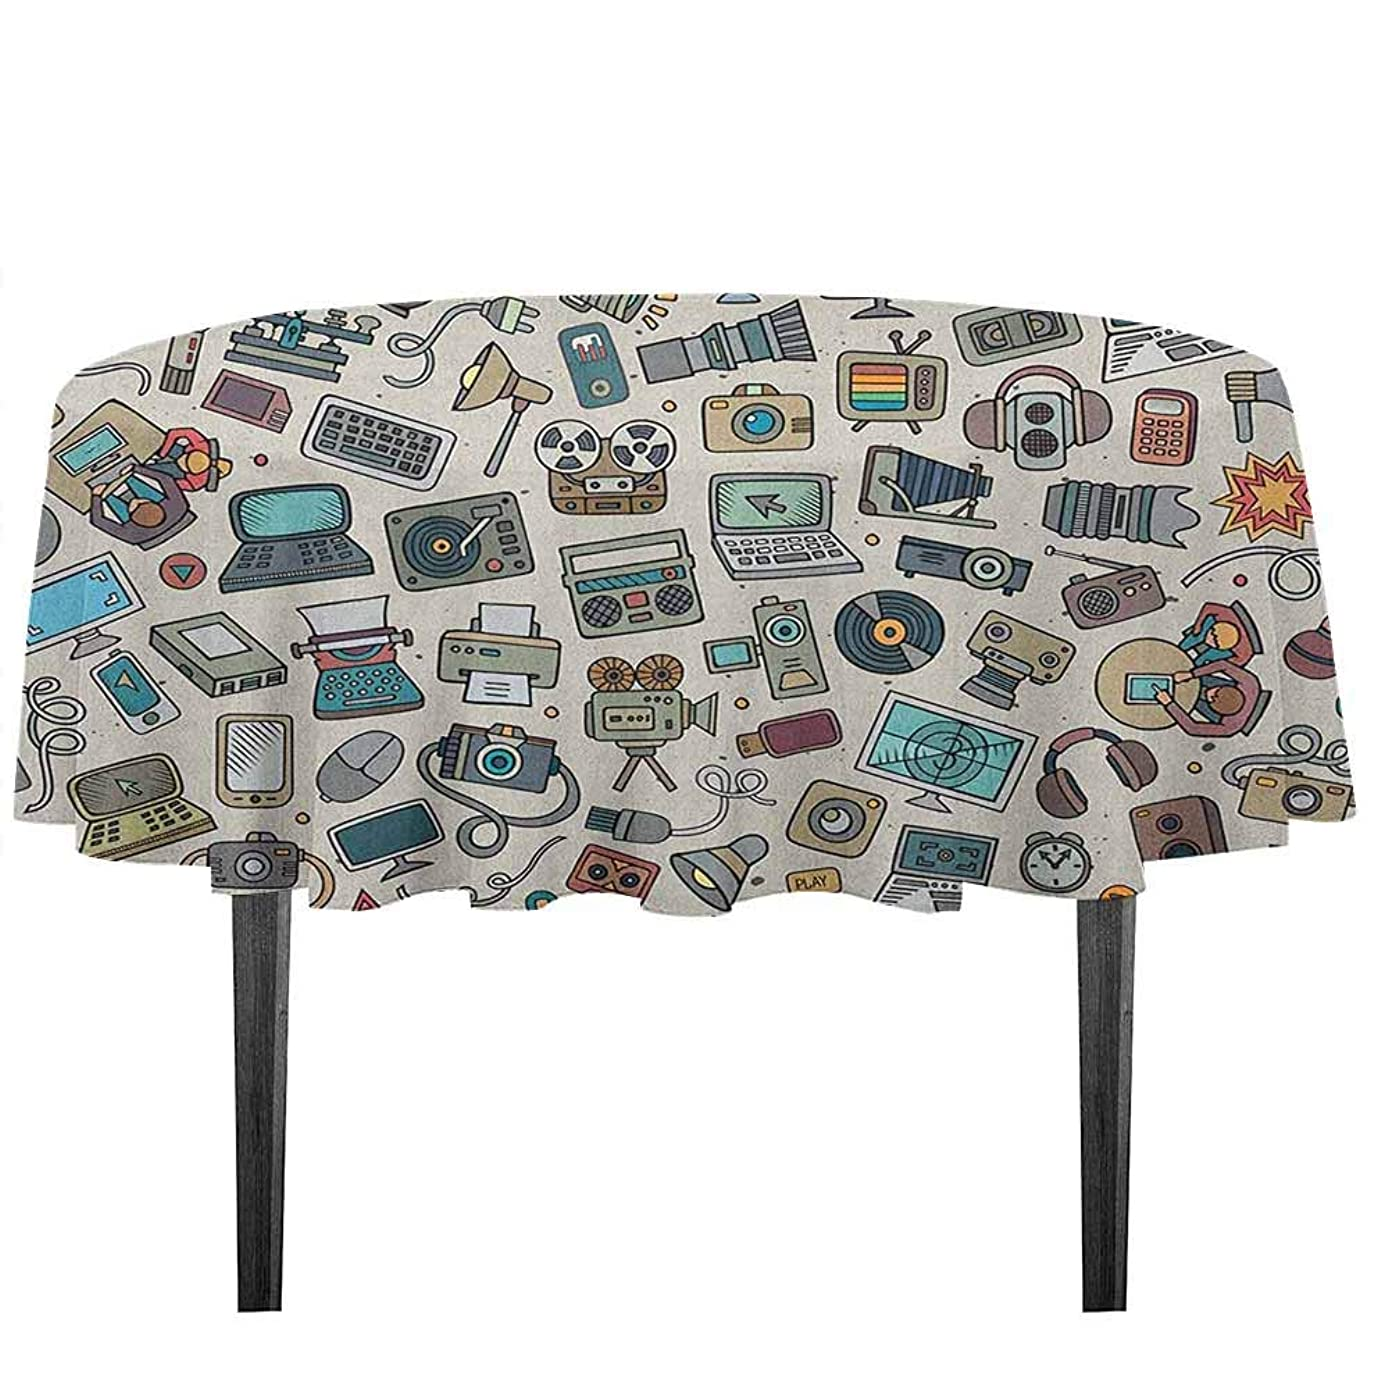 kangkaishi Doodle Printed Tablecloth Complation of Various Office Gadgets Recorder Tv Laptop Monitor Tablet Switch Mouse Outdoor and Indoor use D35.4 Inch Multicolor